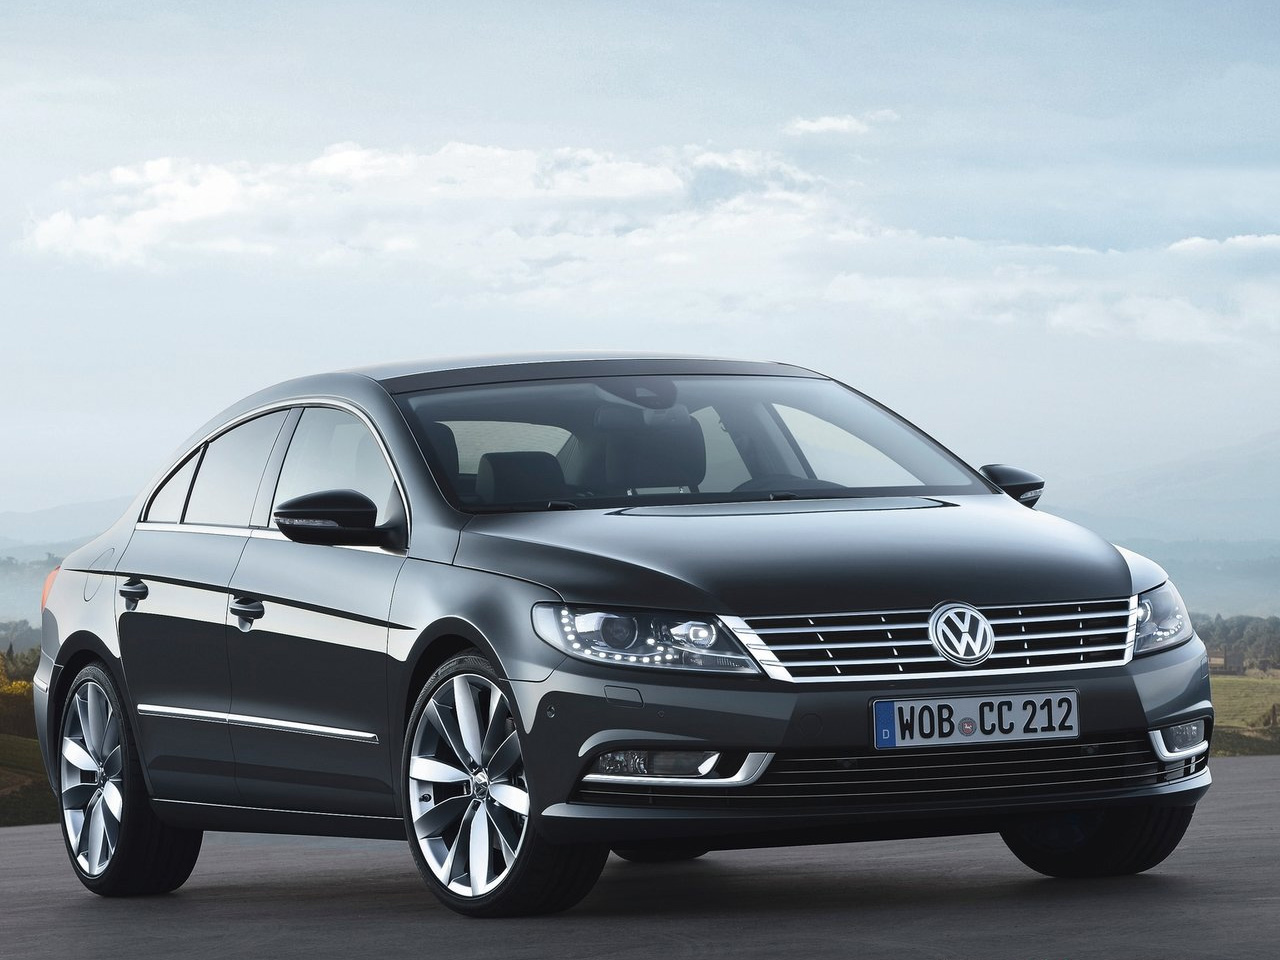 Volkswagen Passat CC 1.4 2013 photo - 3